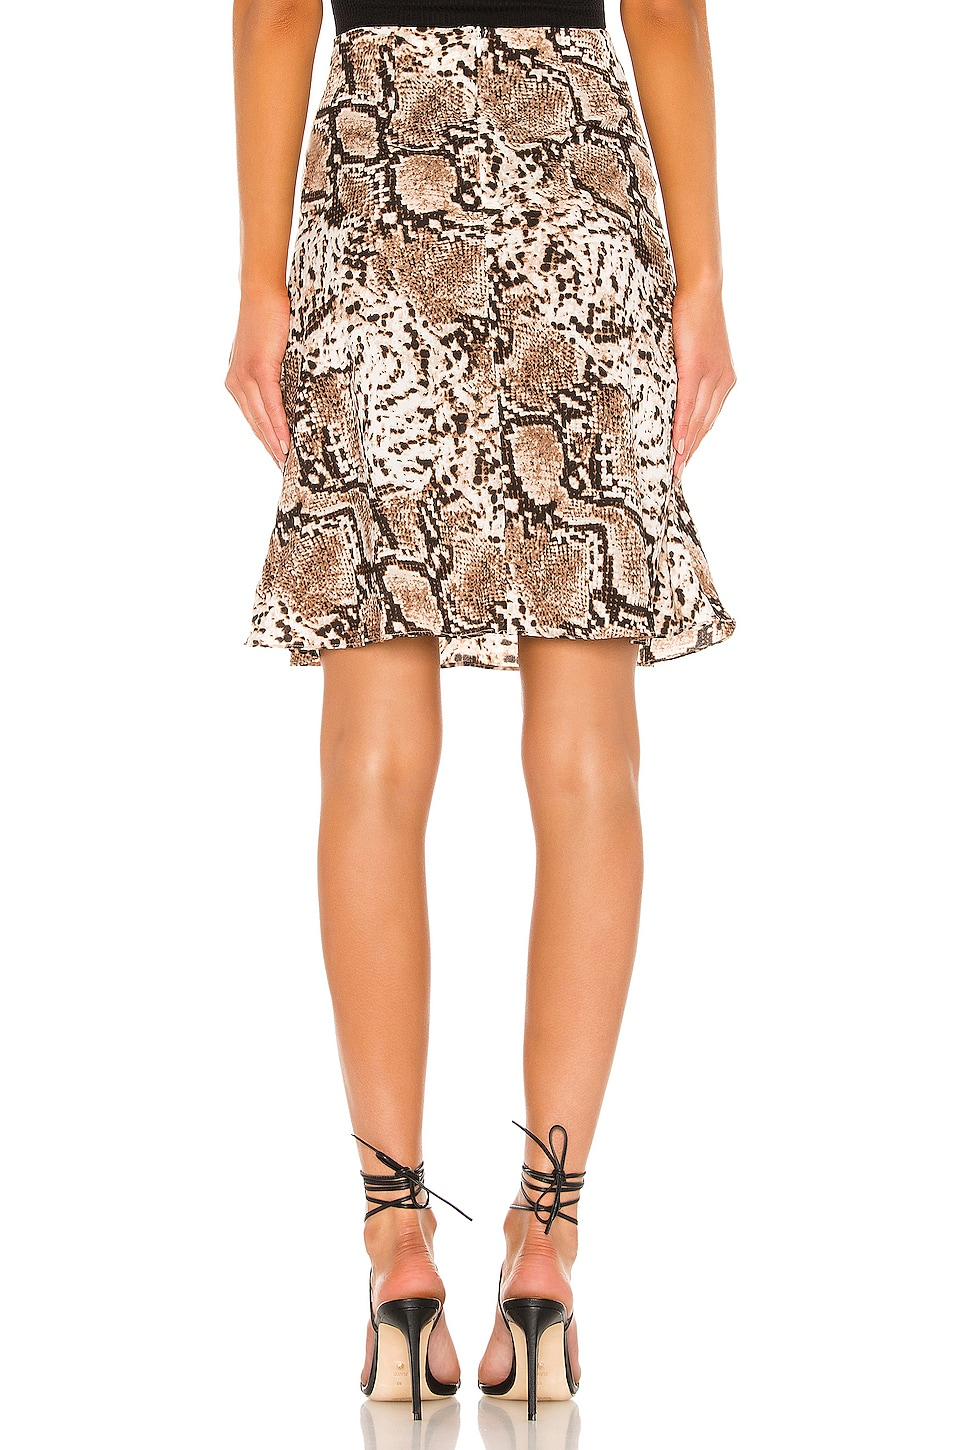 Rudy Skirt, view 3, click to view large image.